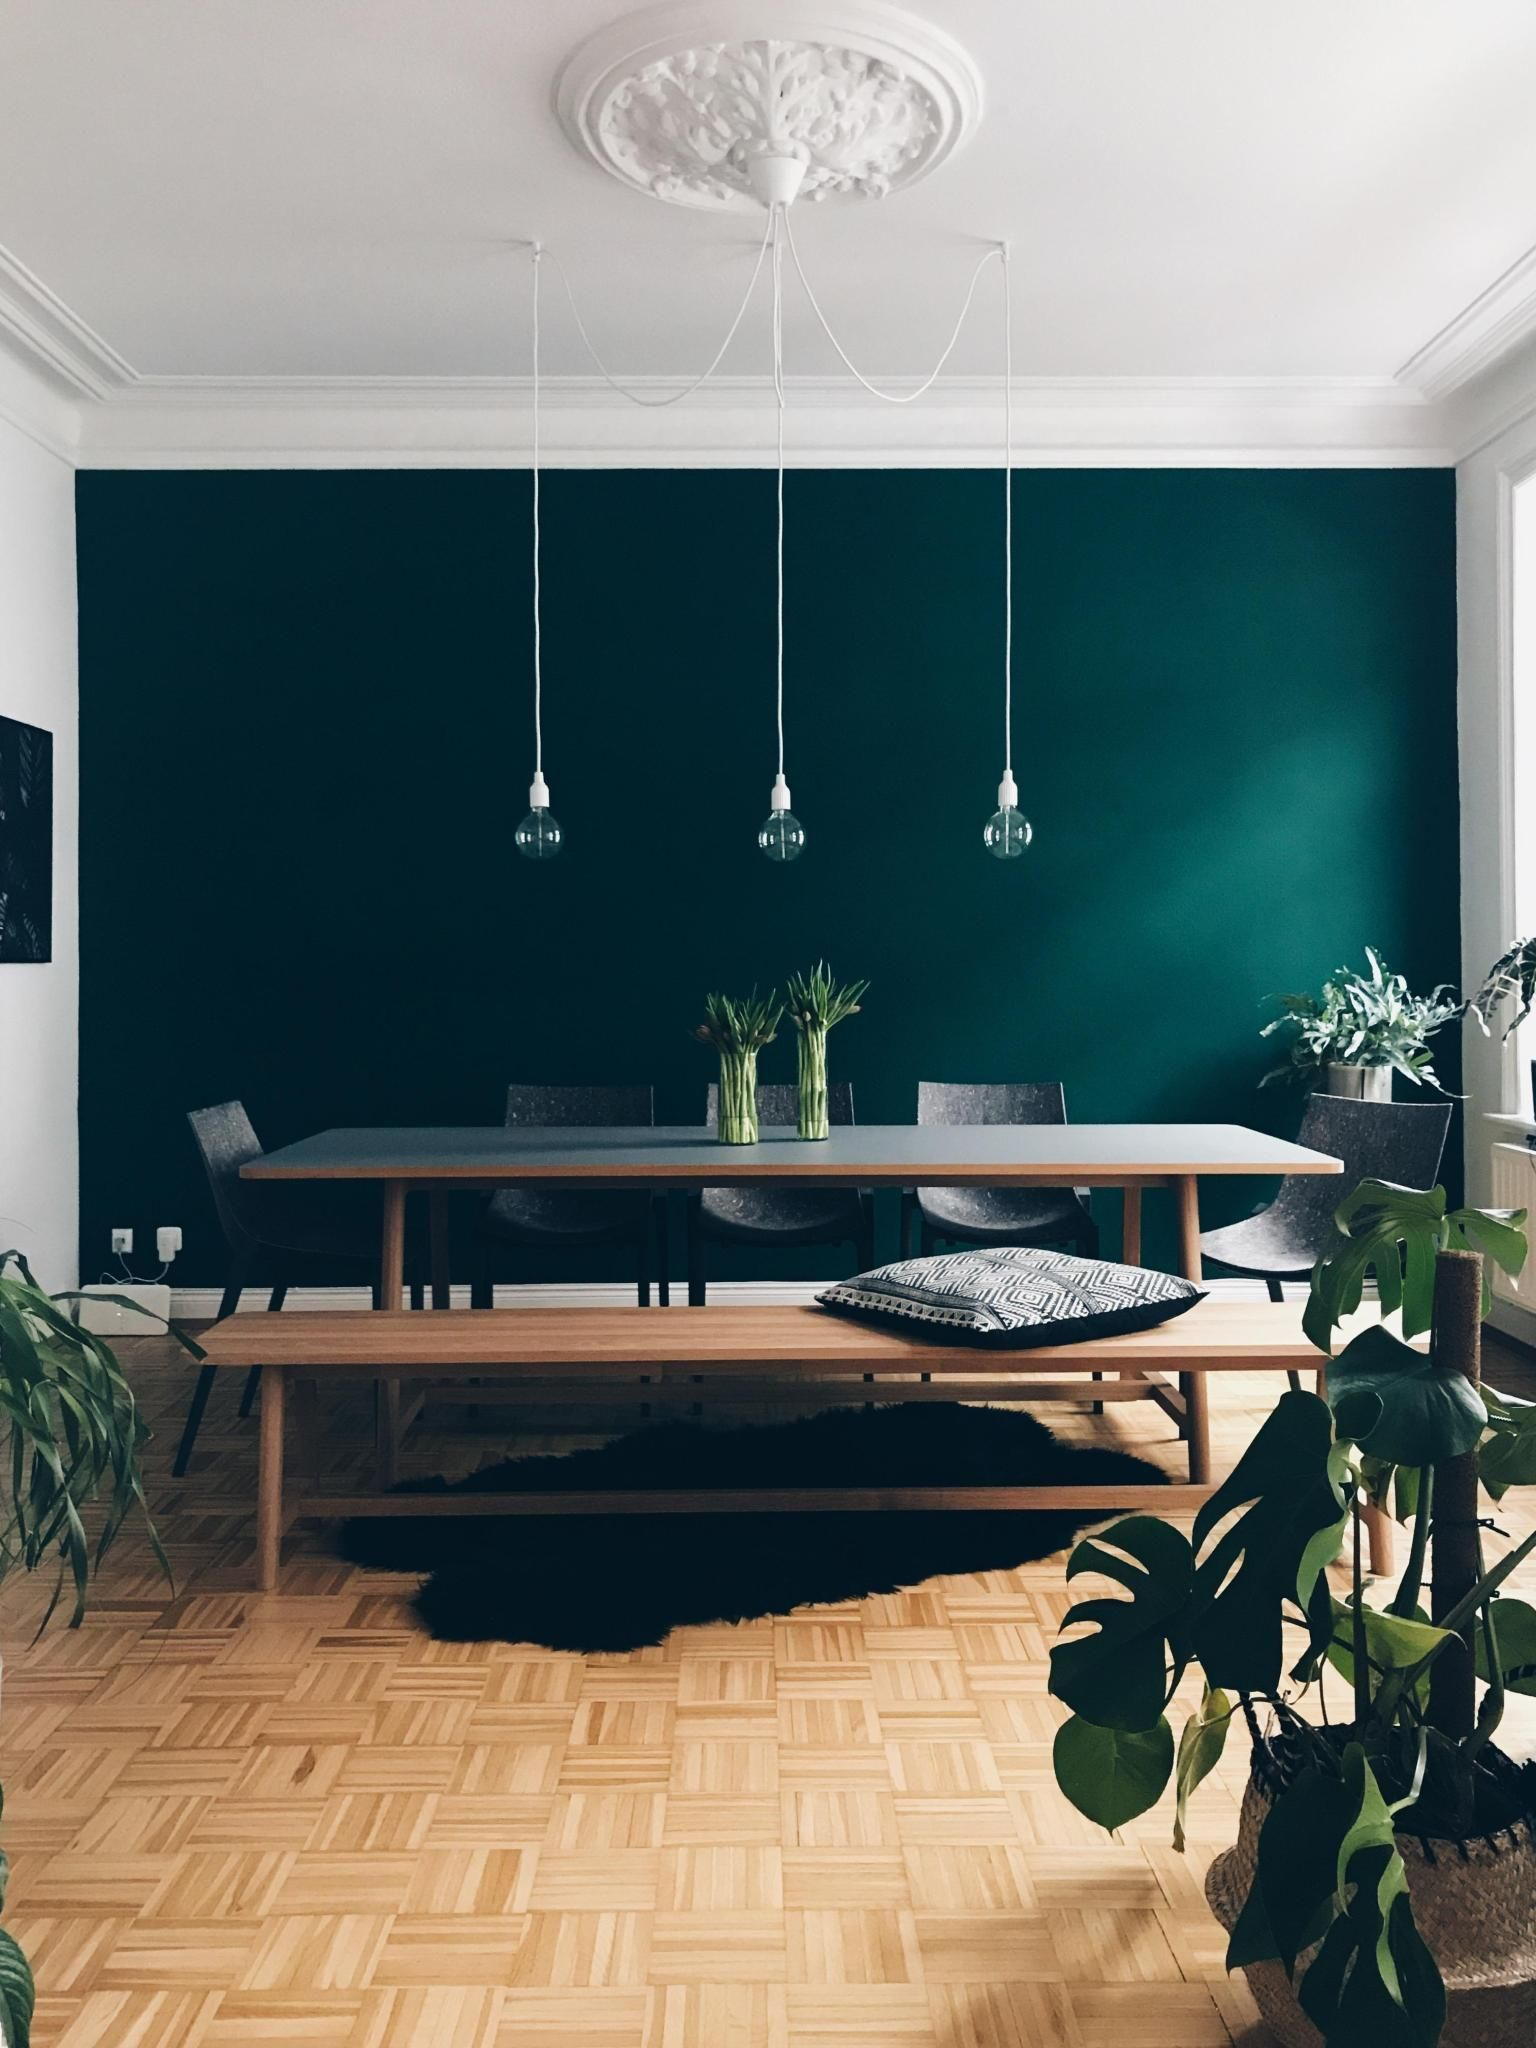 The Color Is Called Jagergrun Hunter Green By Schoner Wohnen Farbe Www Schoener Wohn Altbau Blumenliebe Decoration Diy Decoratio In 2020 Mit Bildern Schoner Wohnen Farbe